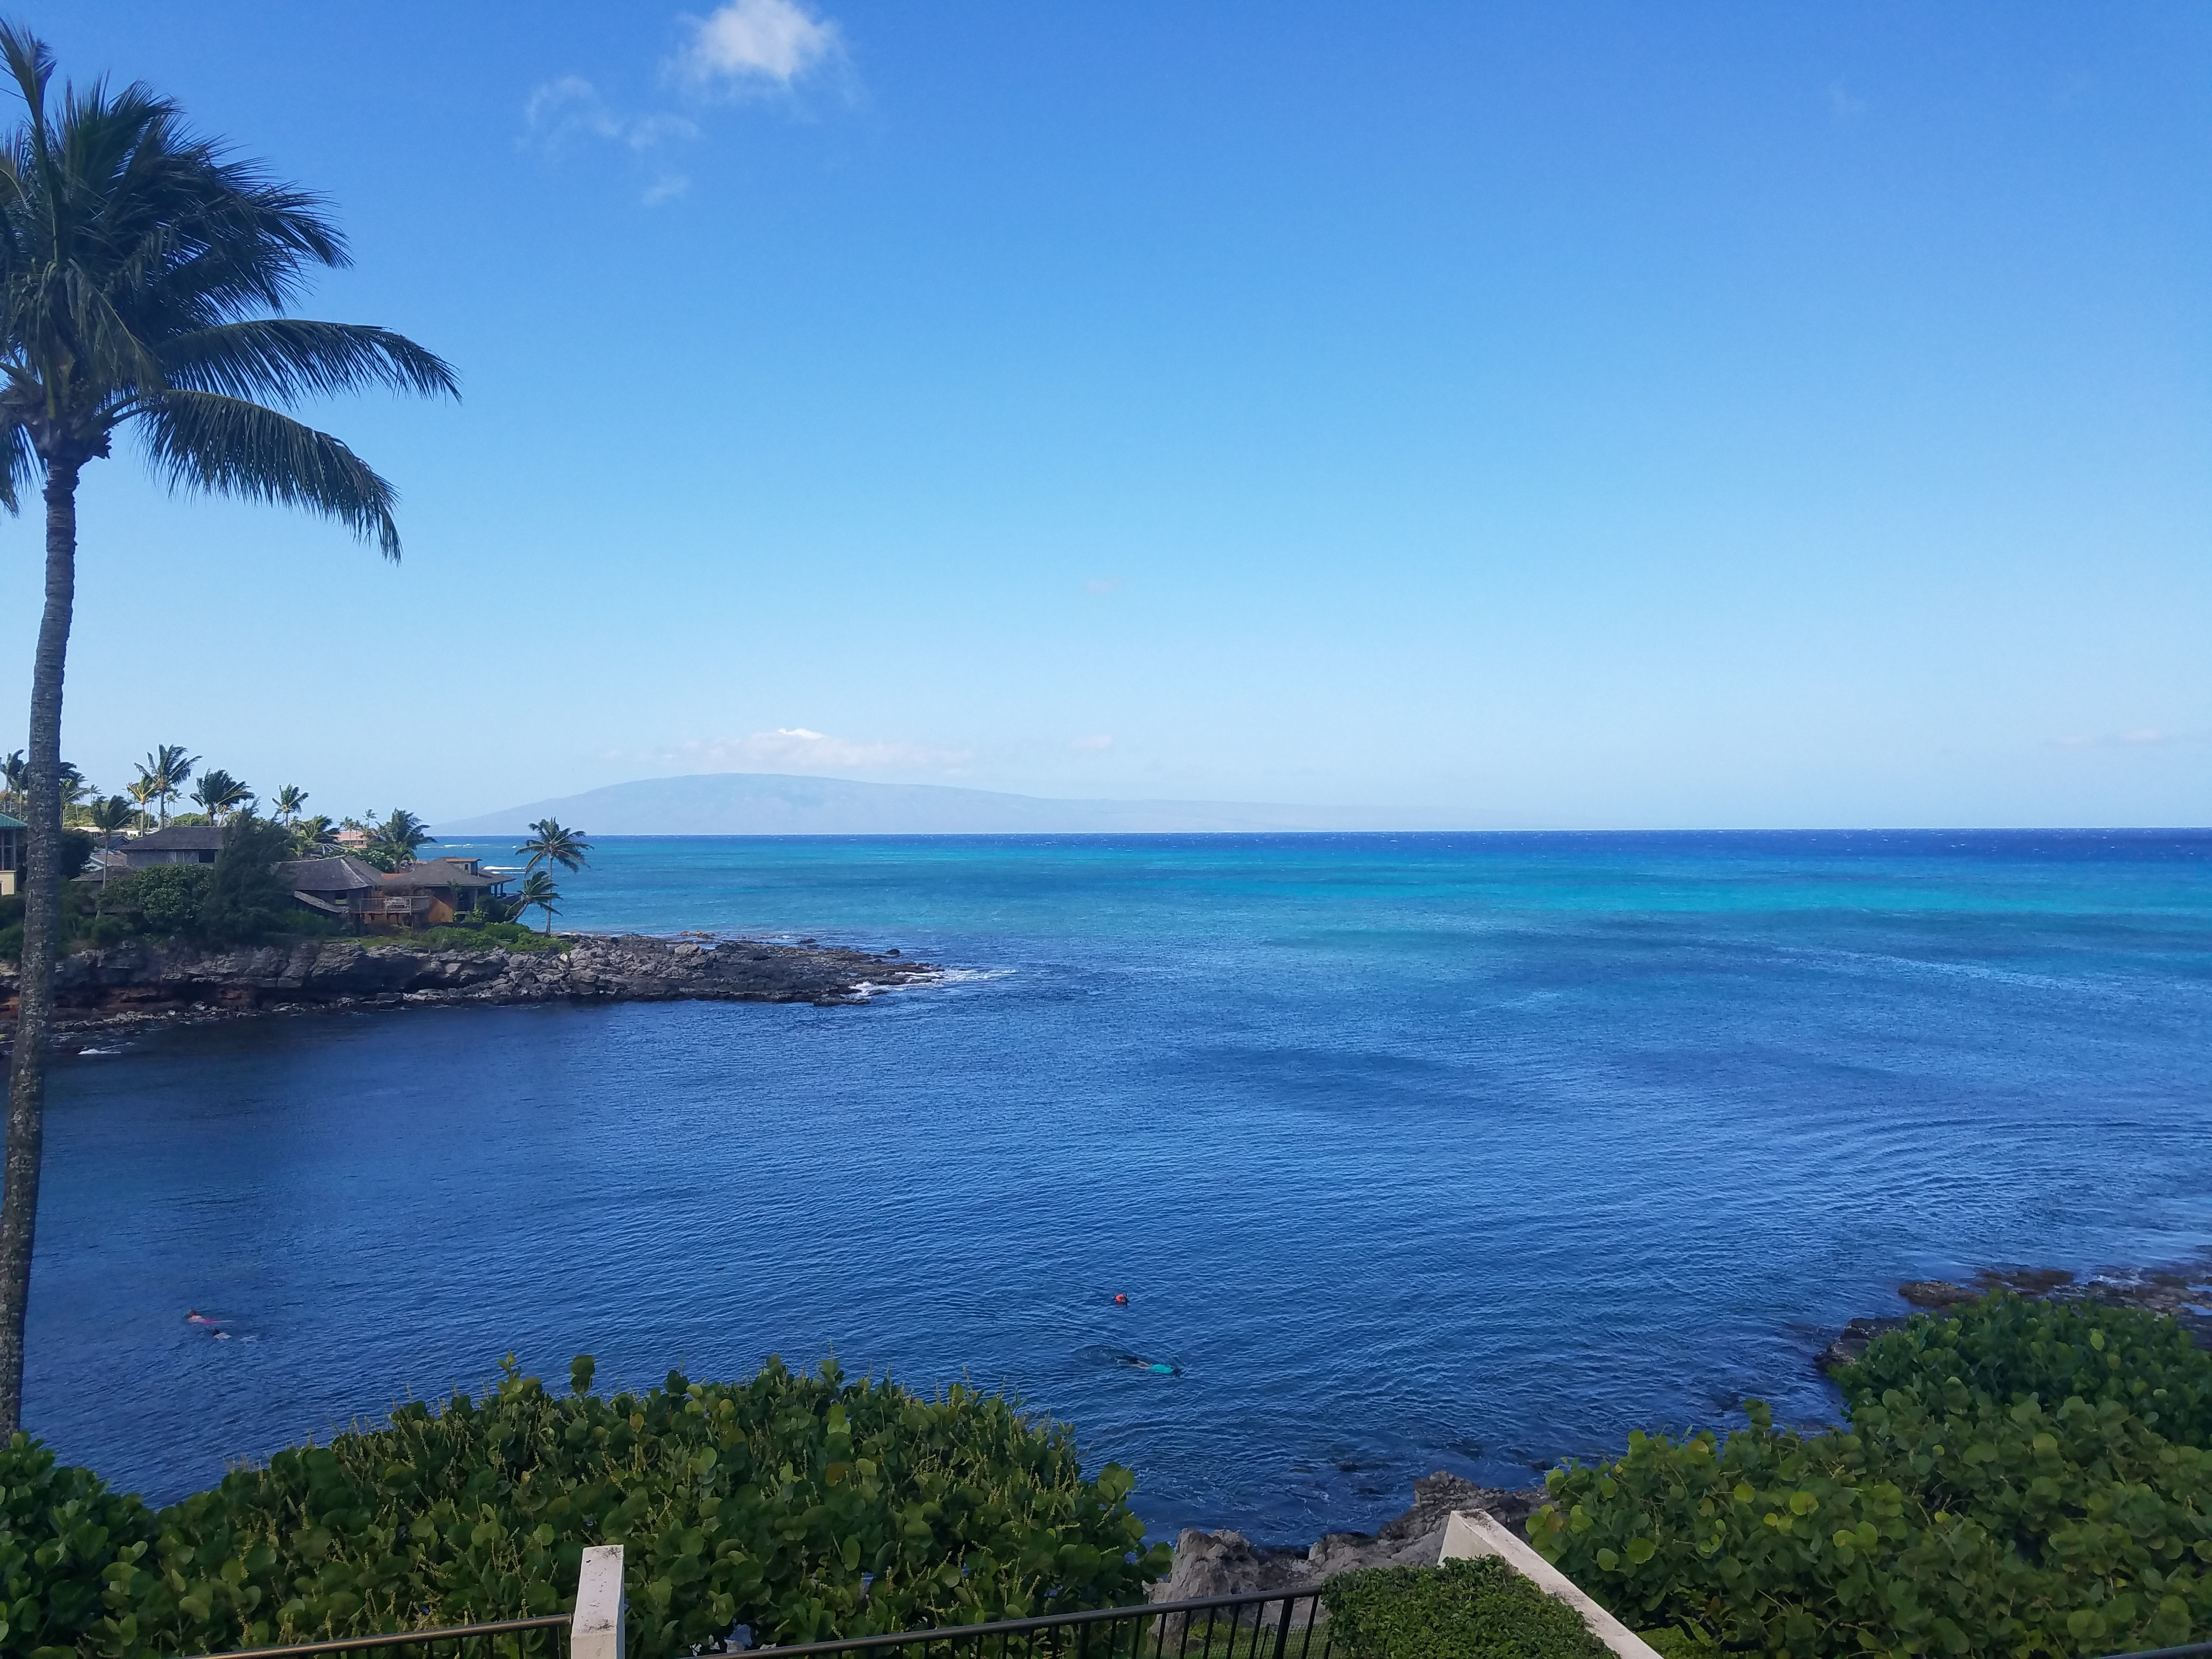 Amazing view of the ocean and Lanai island